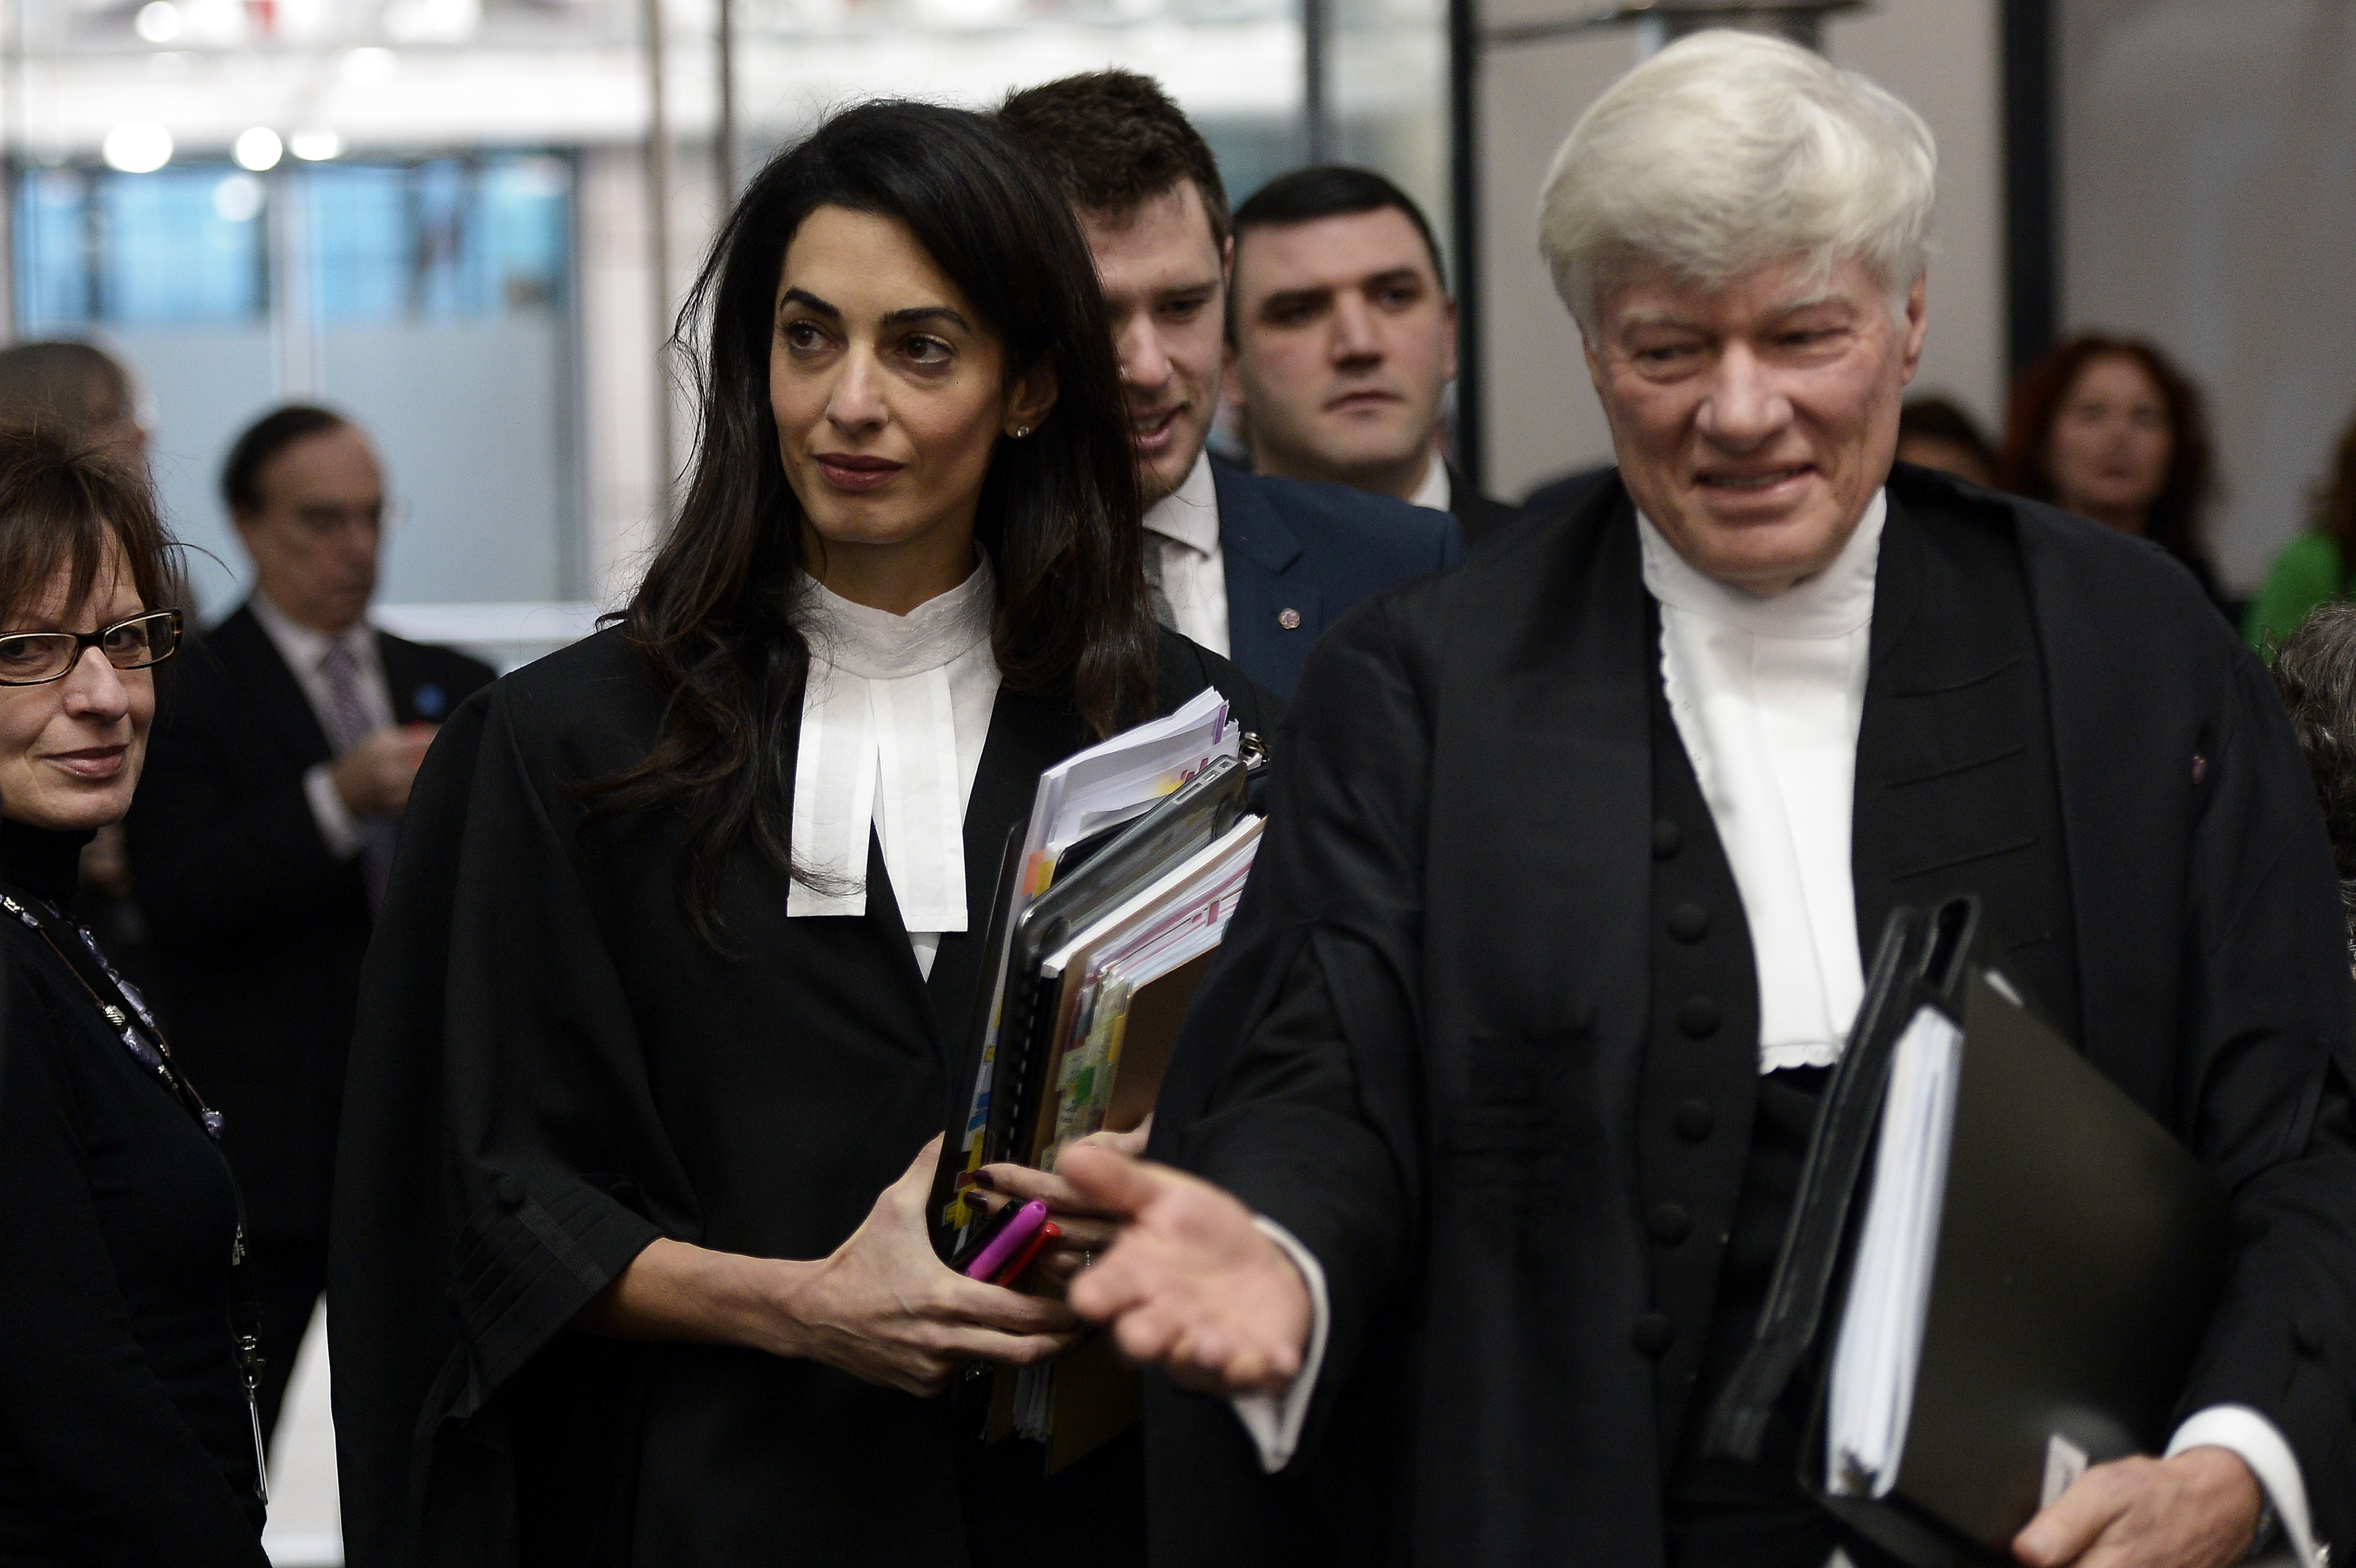 Lawyers Amal Clooney  and Geoffrey Robertso, arrive on Jan. 28, 2015 to attend the appeal hearing in Perincek case before the European Court of Human Rights in Strasbourg, France.